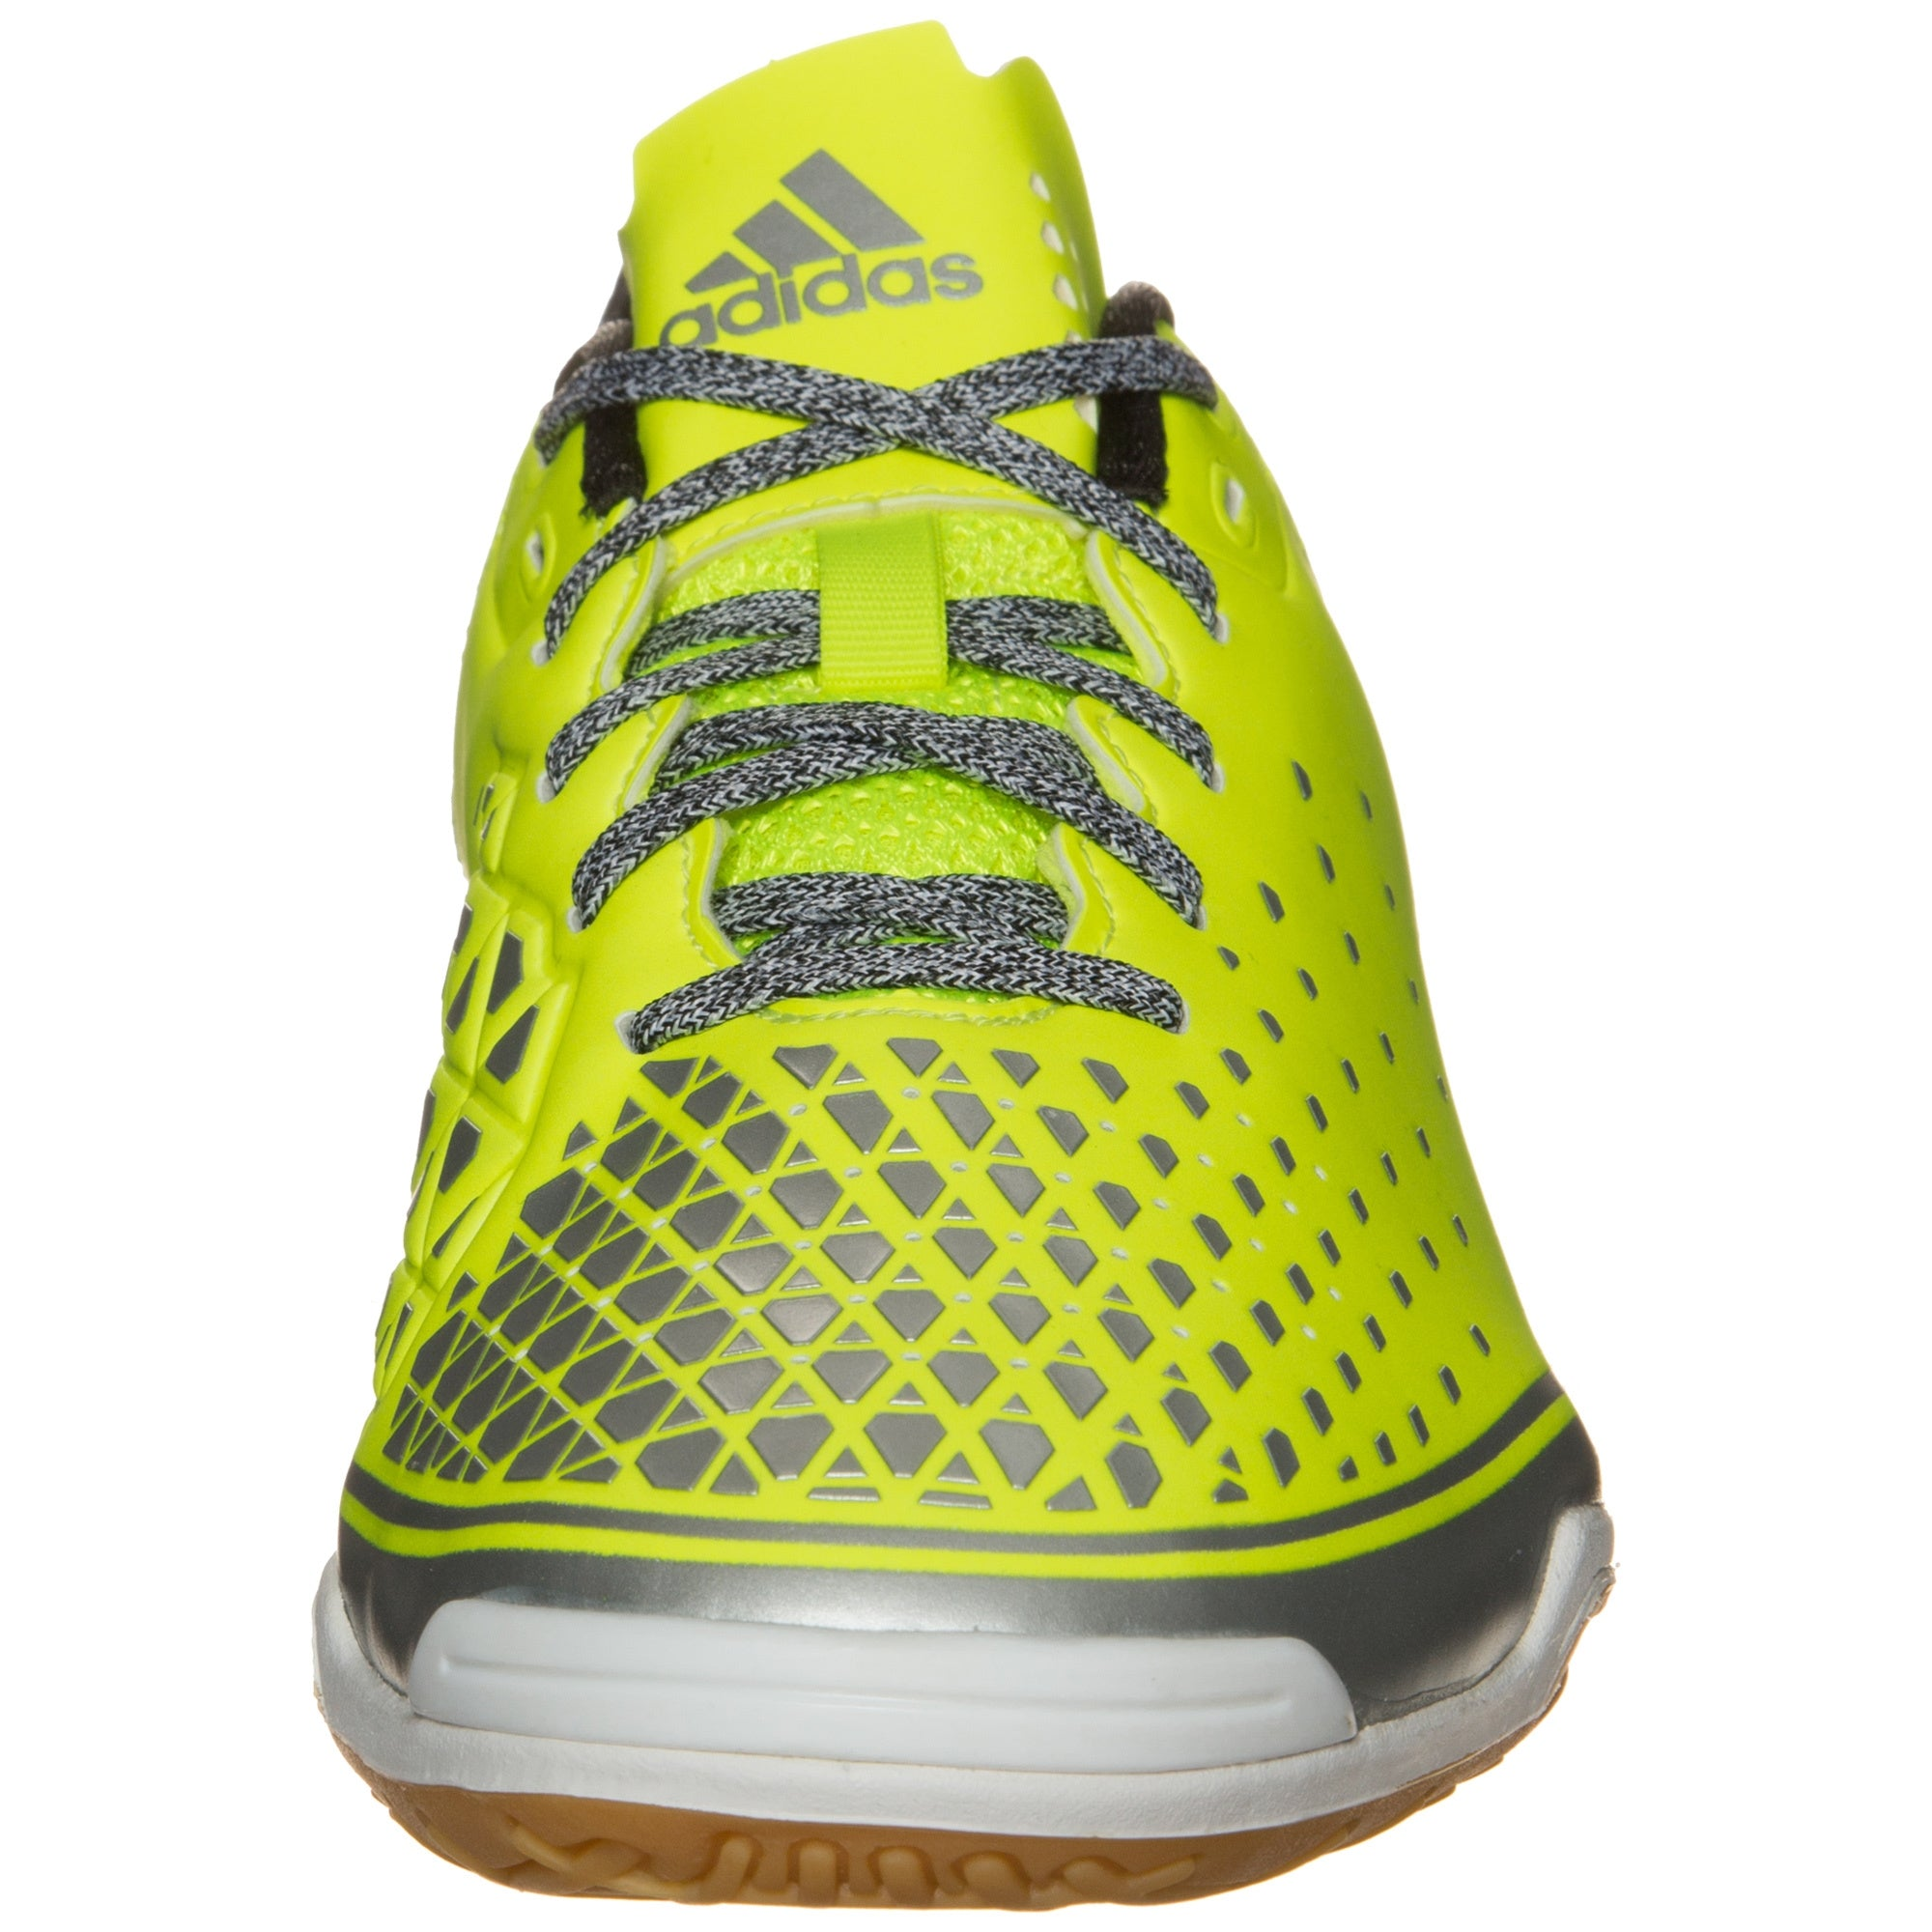 ac8073c890 ... discount adidas ace 16.2 court indoor football shoes mens yel blk 0f3cb  2bc1f